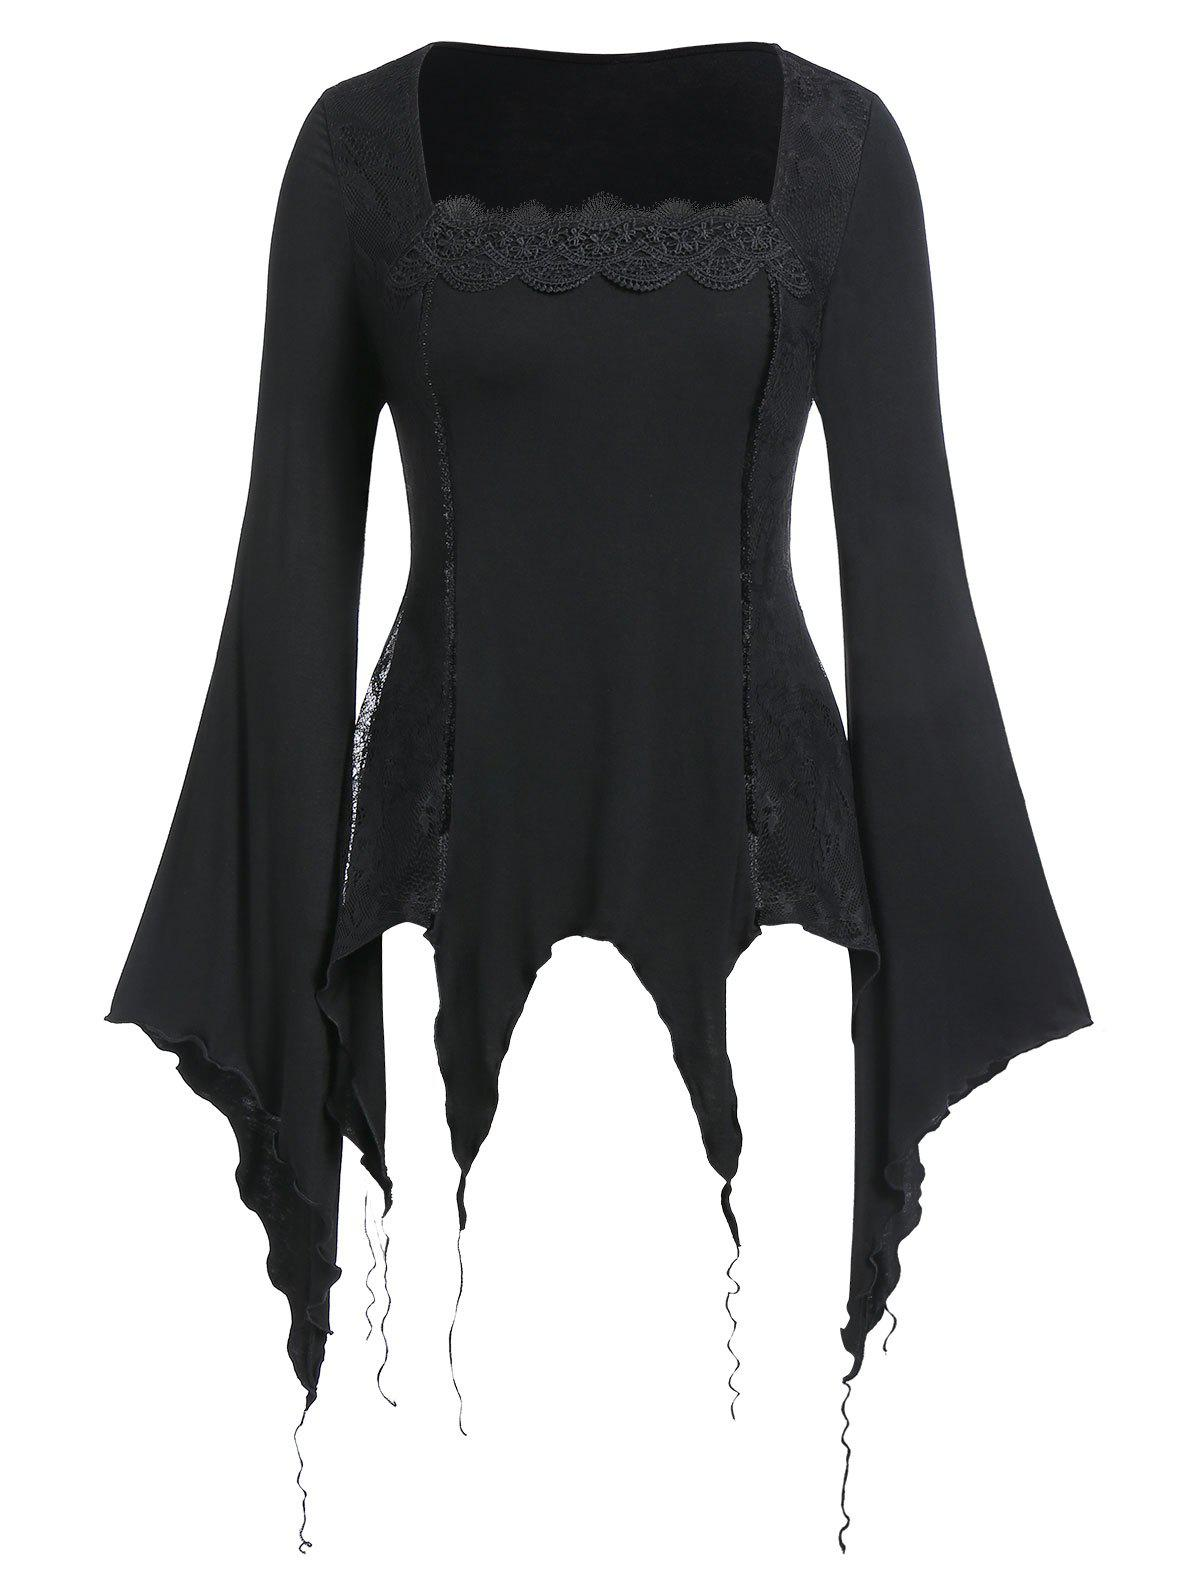 Plus Size Halloween Lace Insert Handkerchief Gothic Punk T Shirt - BLACK 2X